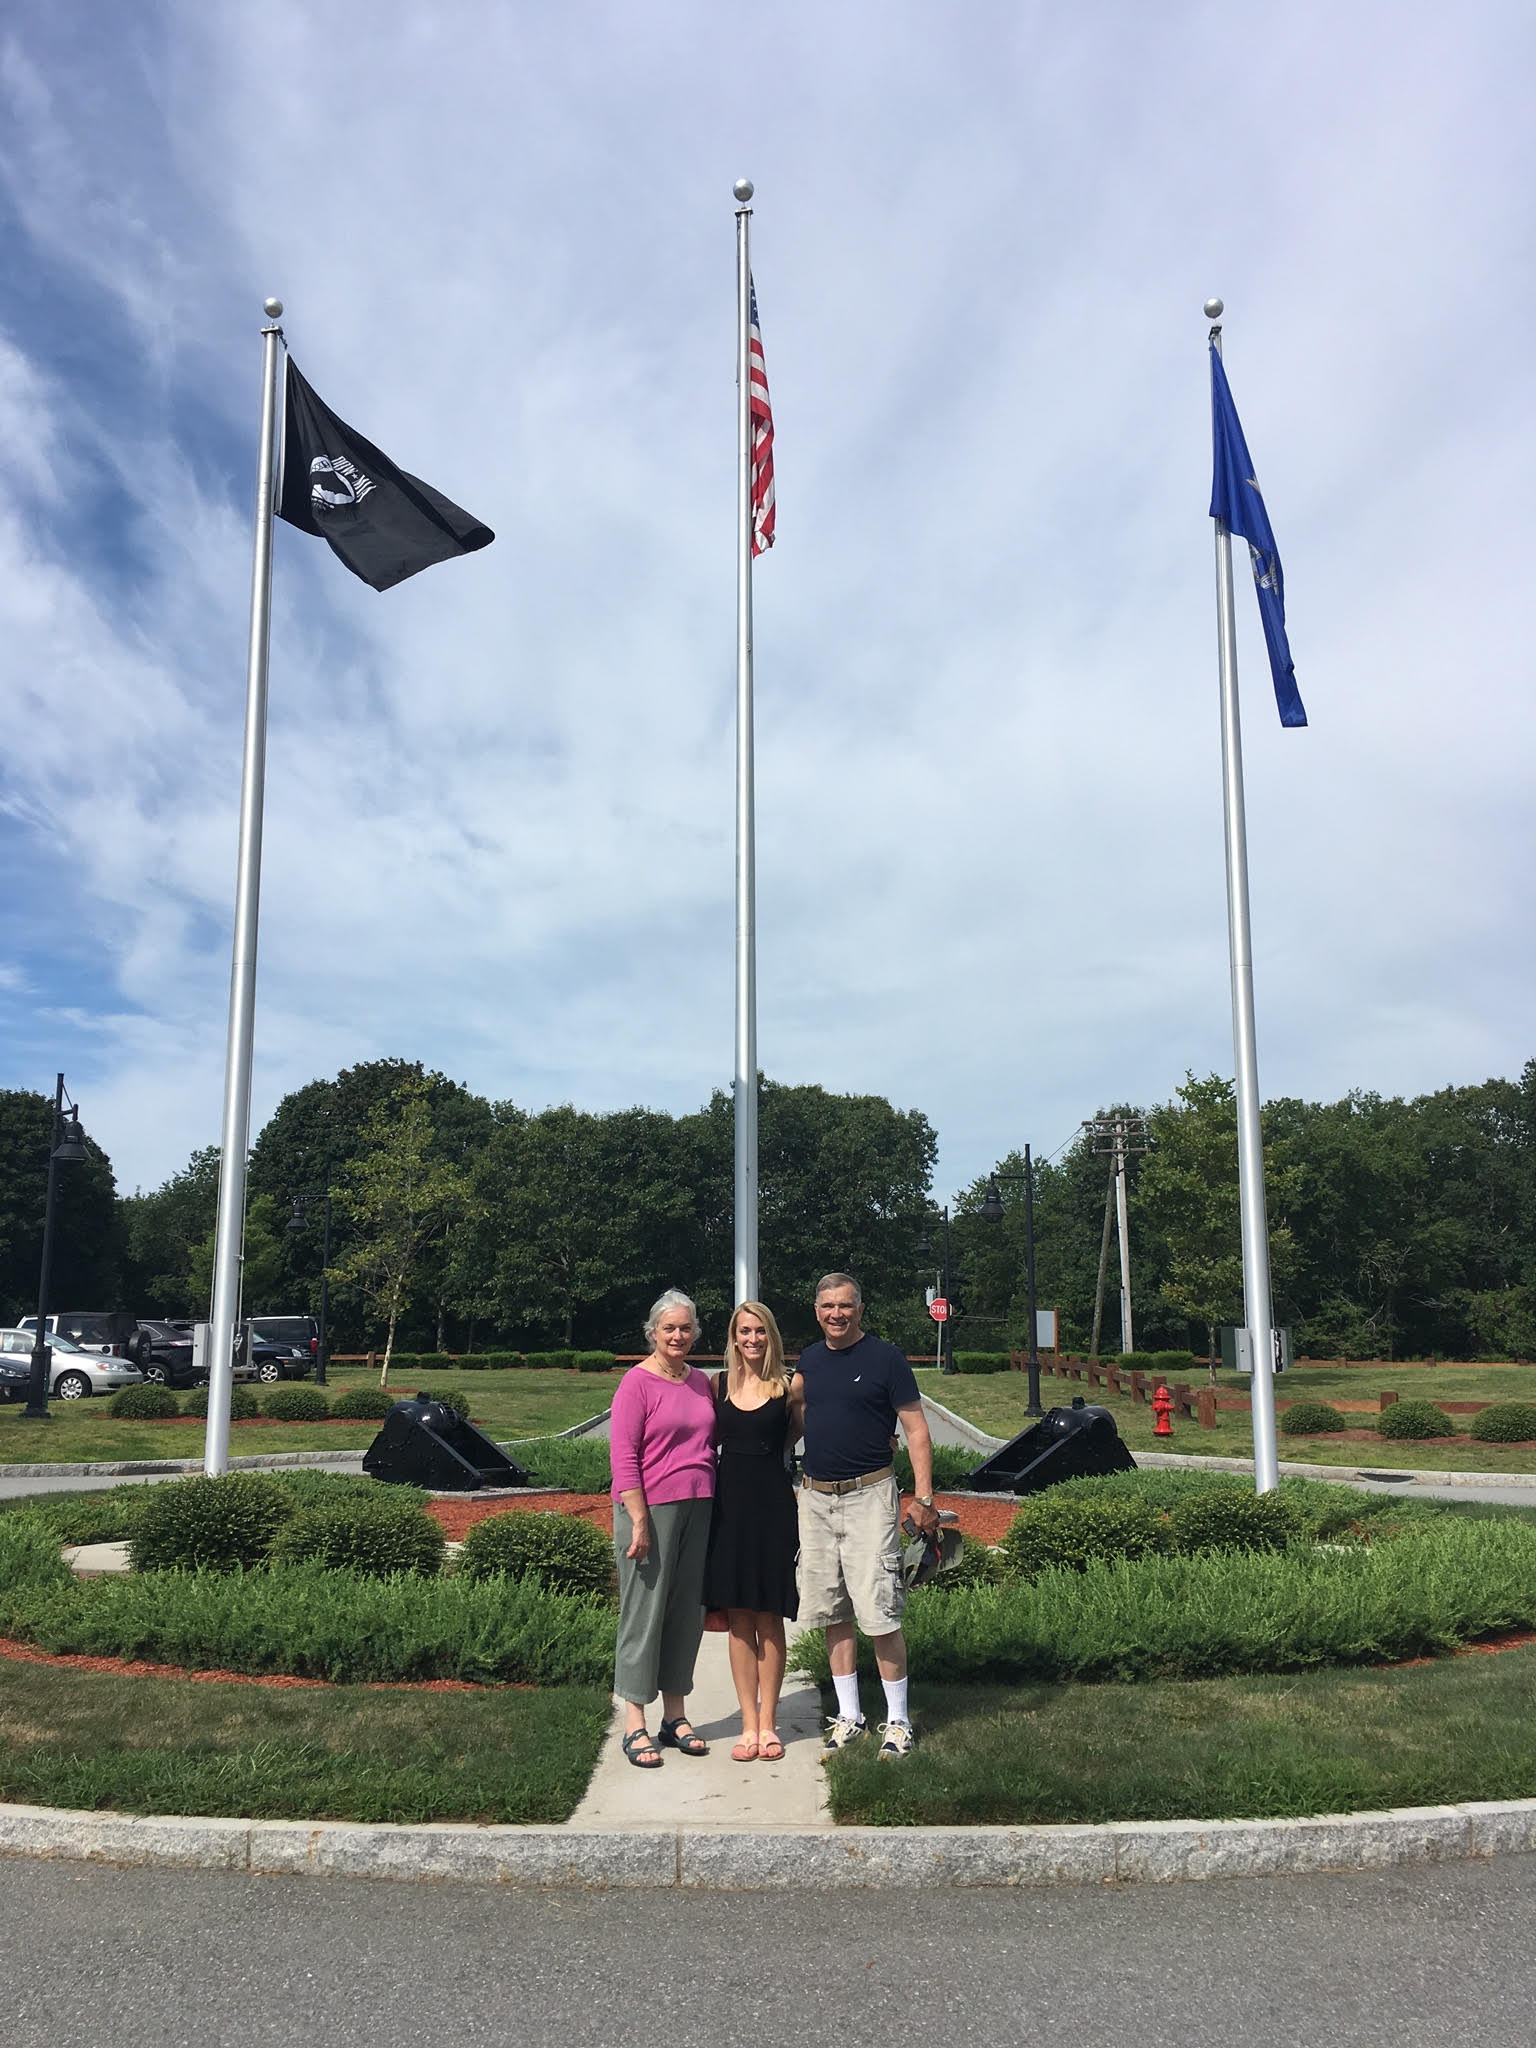 Col. David C. Smith (R) with wife, Diana and daughter Lydia Marie Elizabeth, Beonne Beronda award winner at Camp Niantic, Niantic CT..jpg